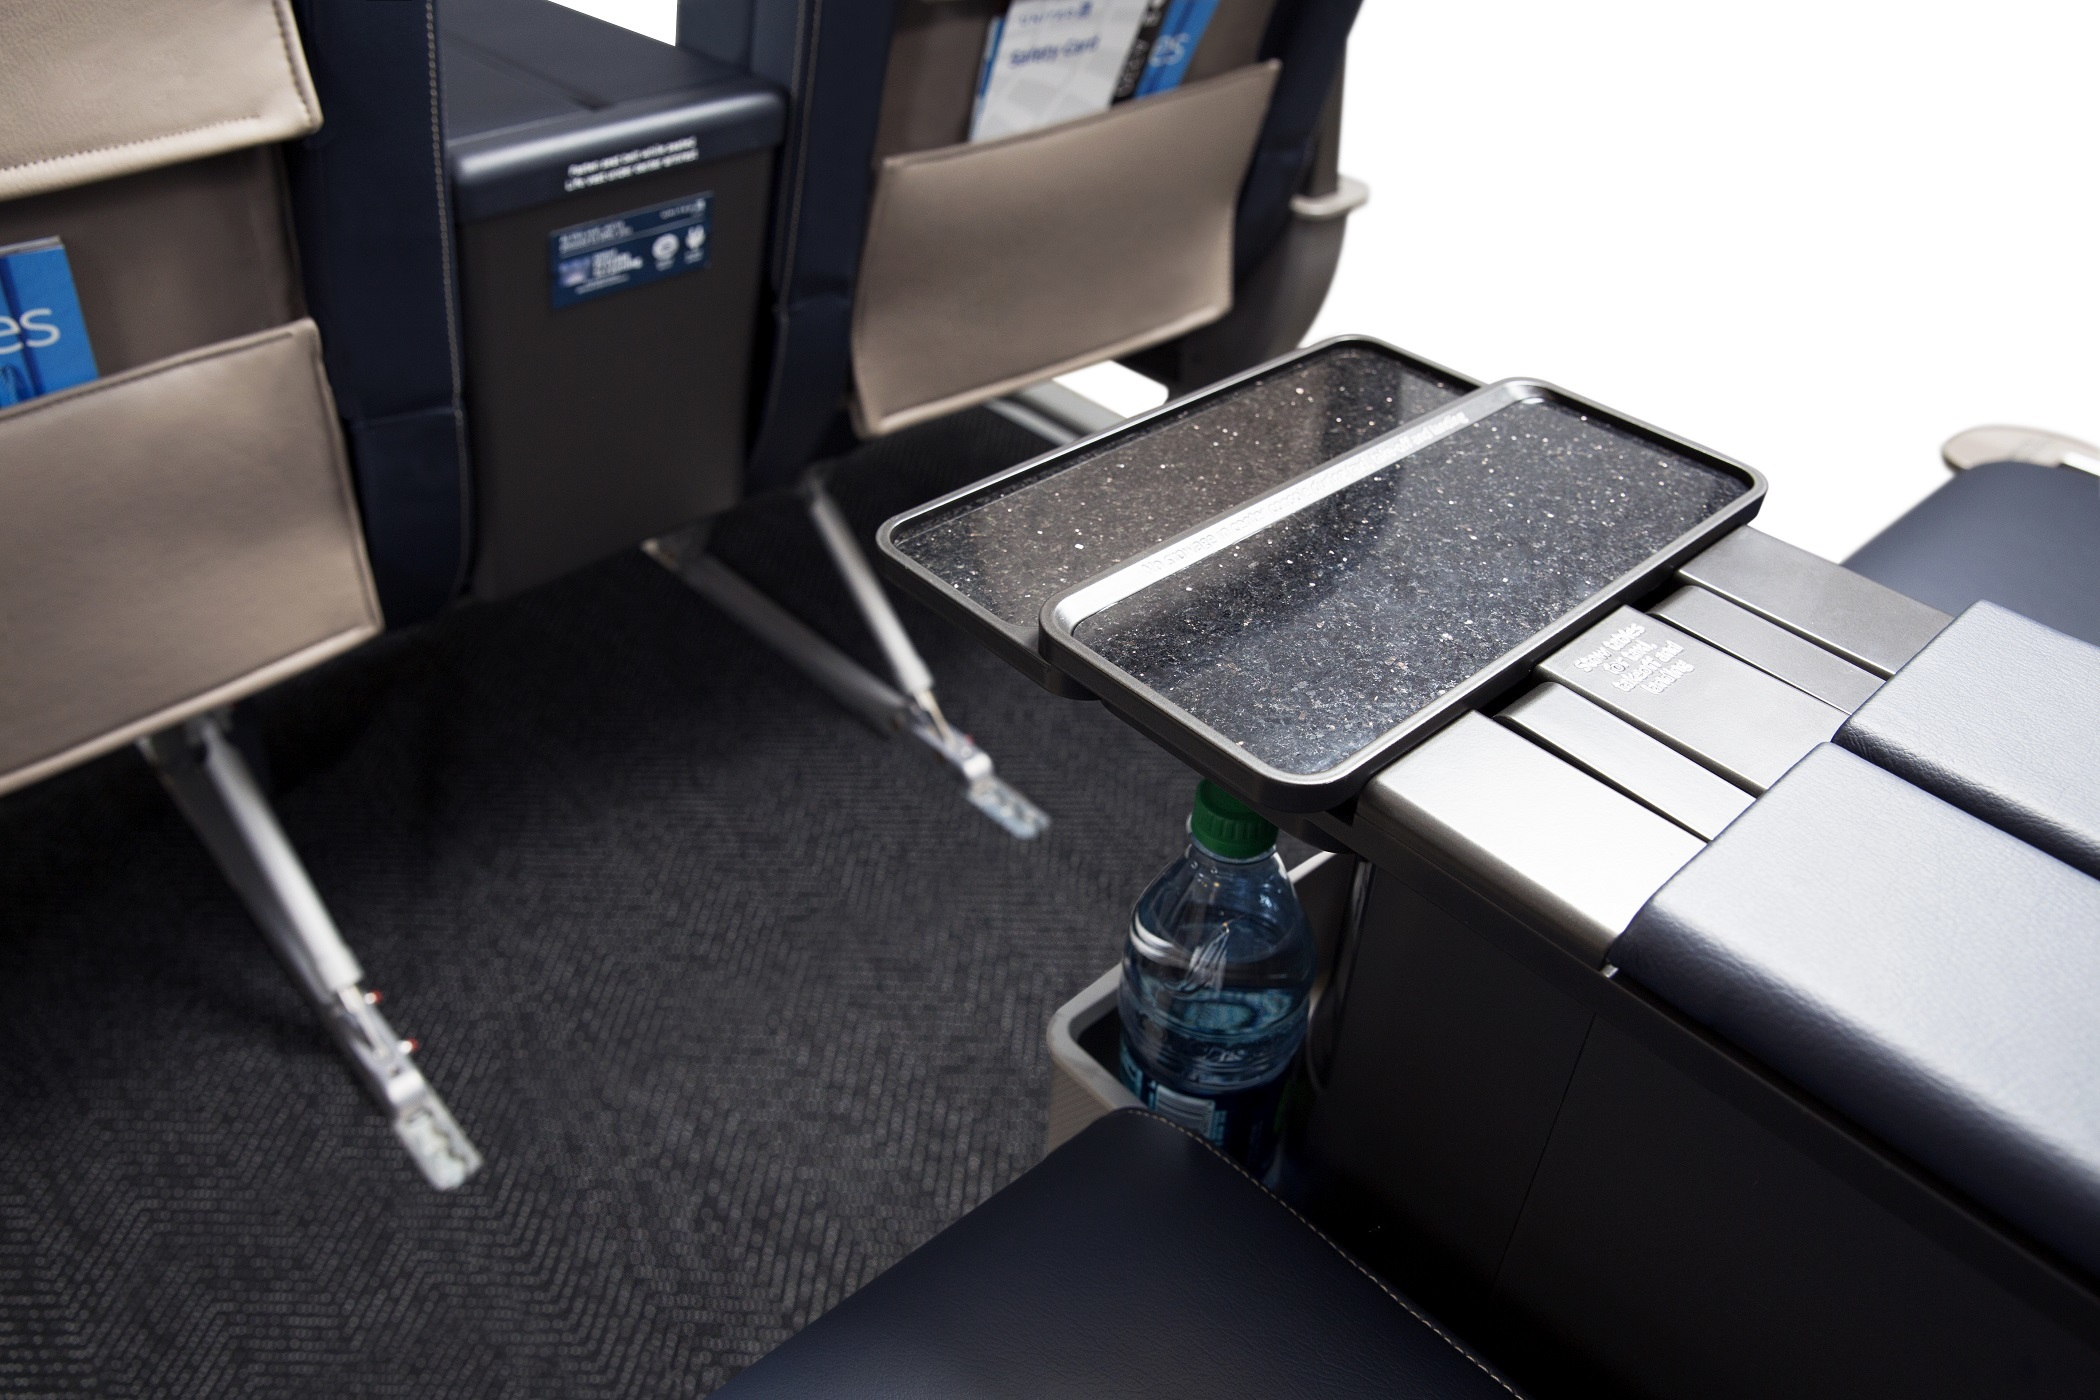 United Airlines First Class console